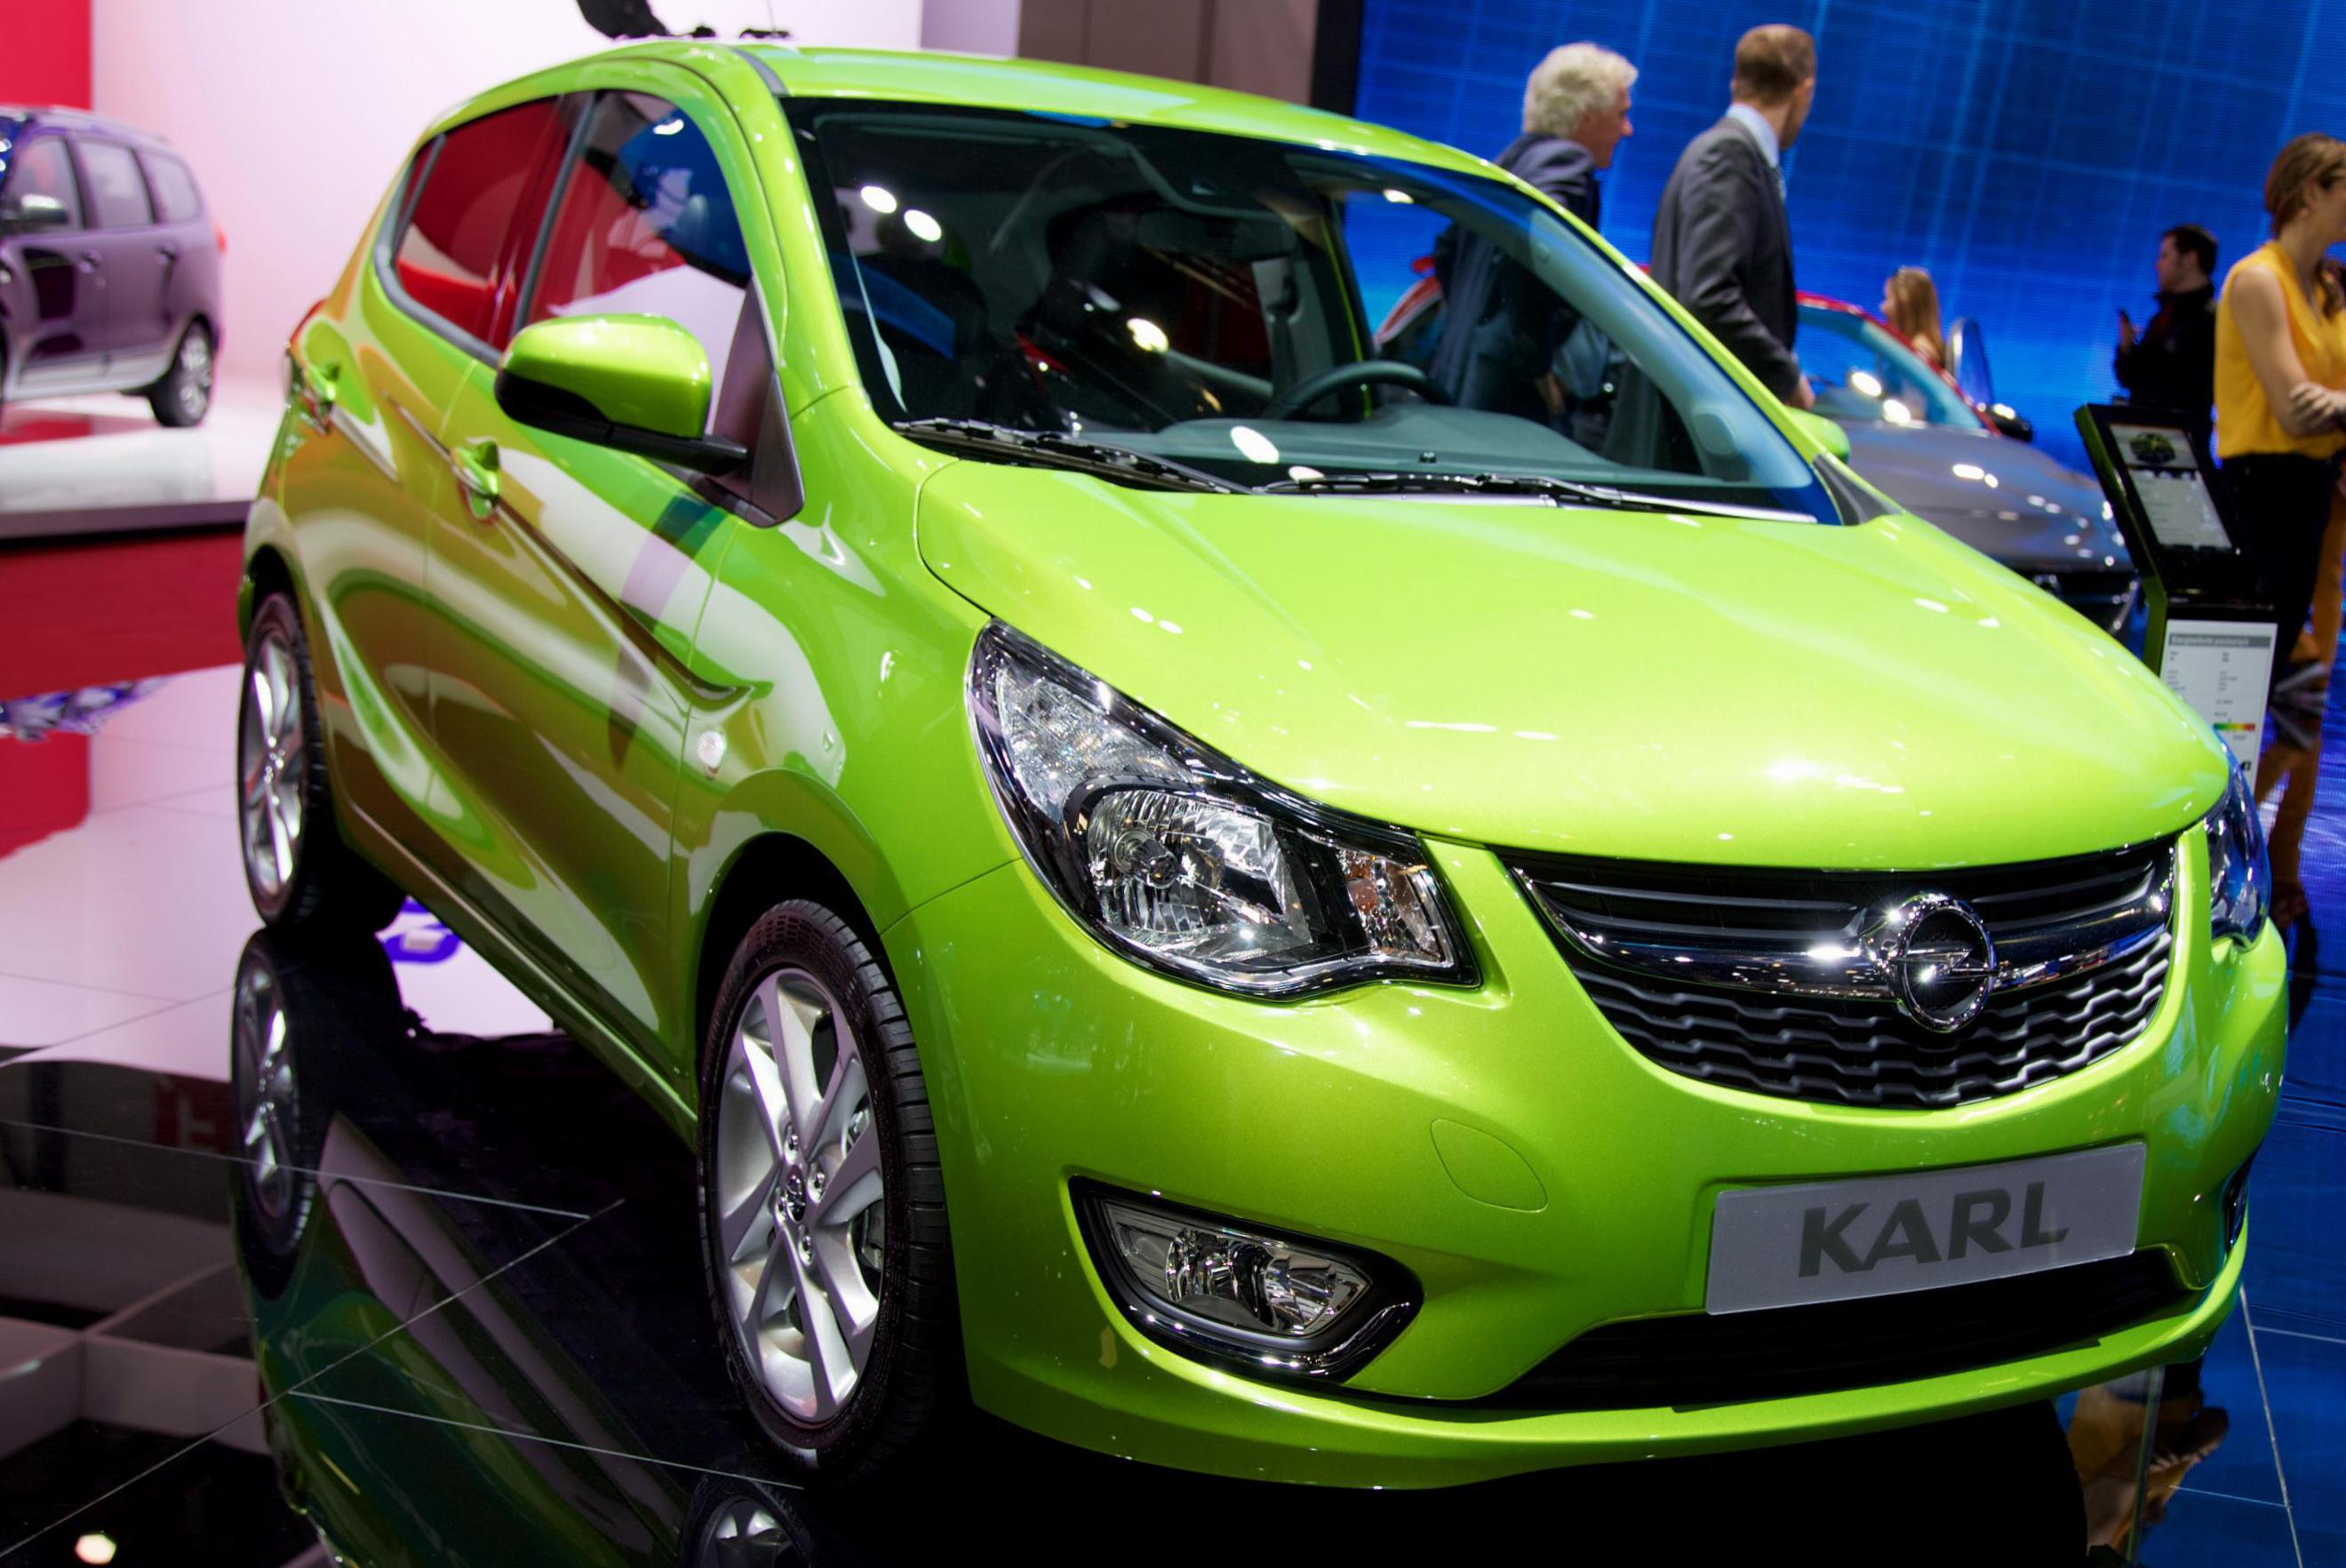 Opel KARL review 2012